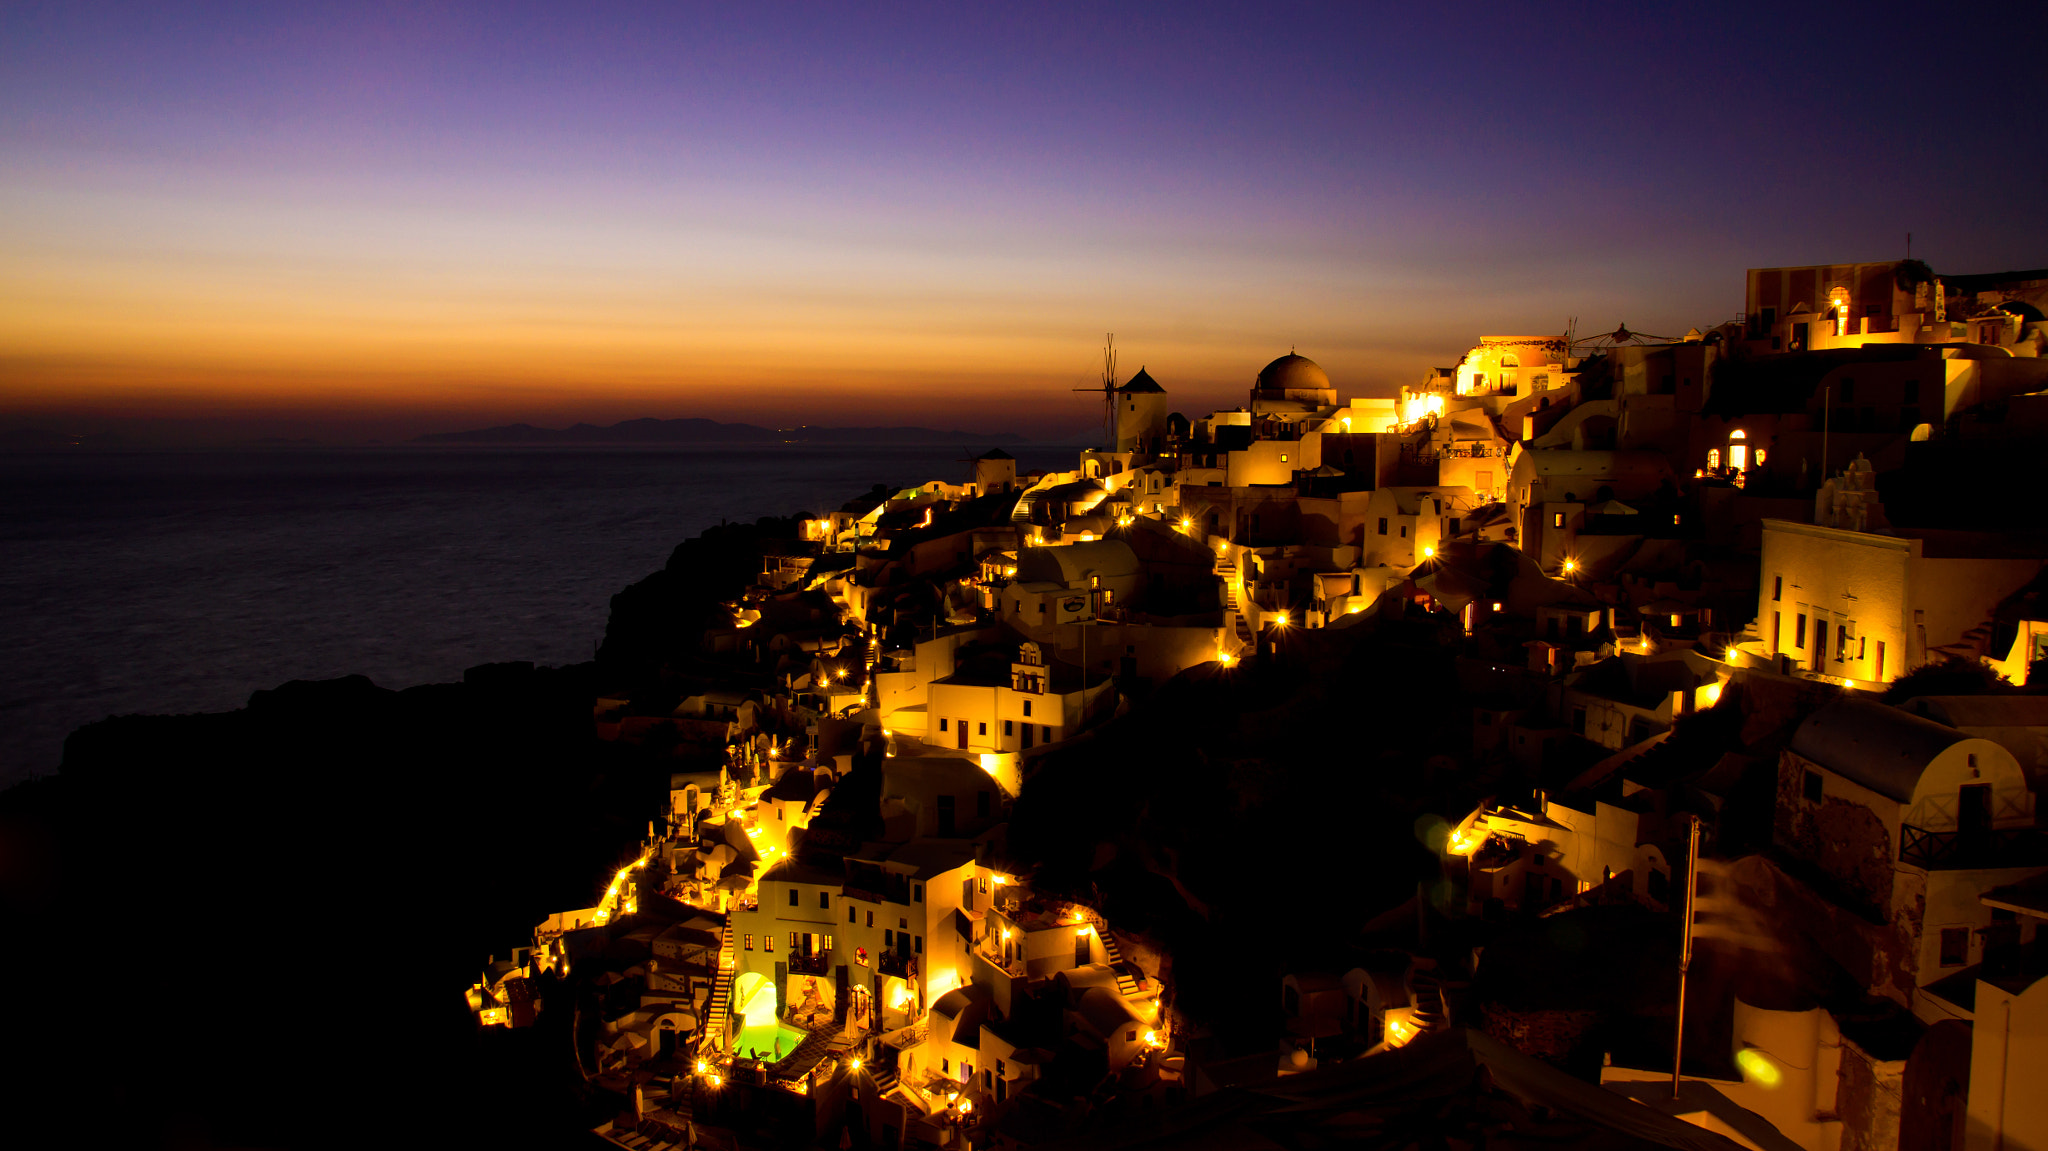 Photograph Last lights at Oia - Santorini Island - Greece by Lluís Grau on 500px